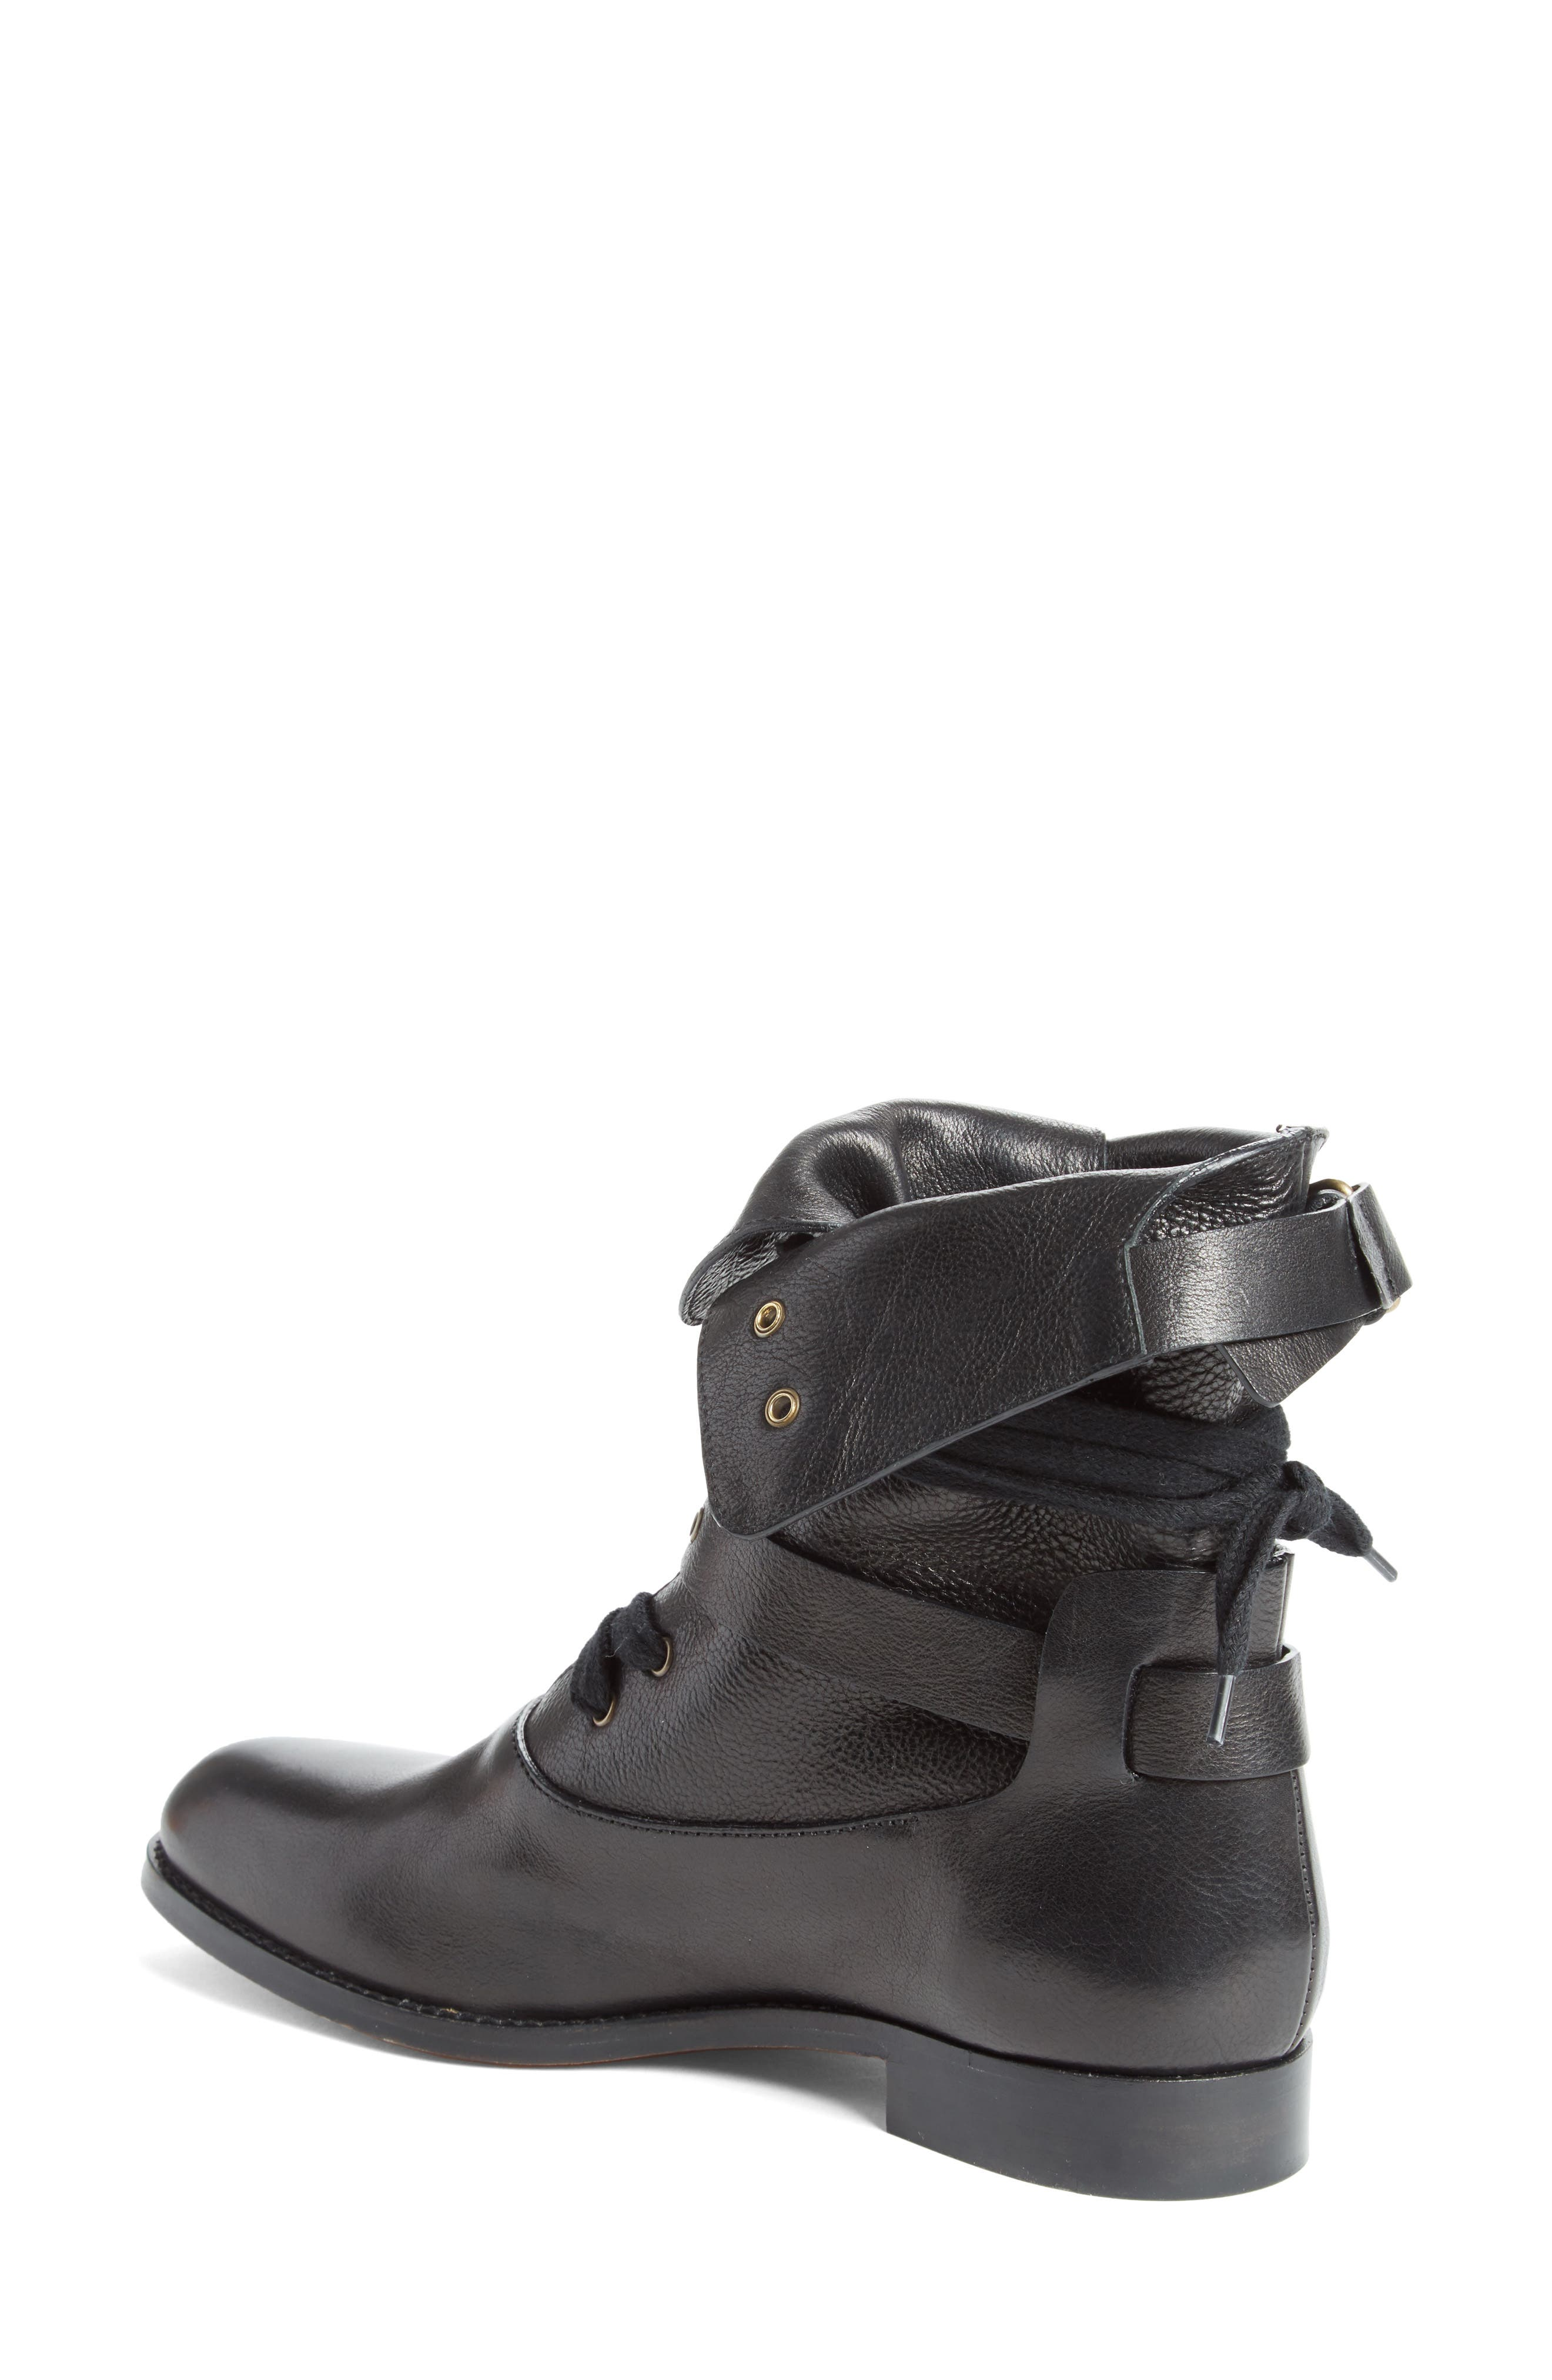 Otto Convertible Boot,                             Alternate thumbnail 2, color,                             Black